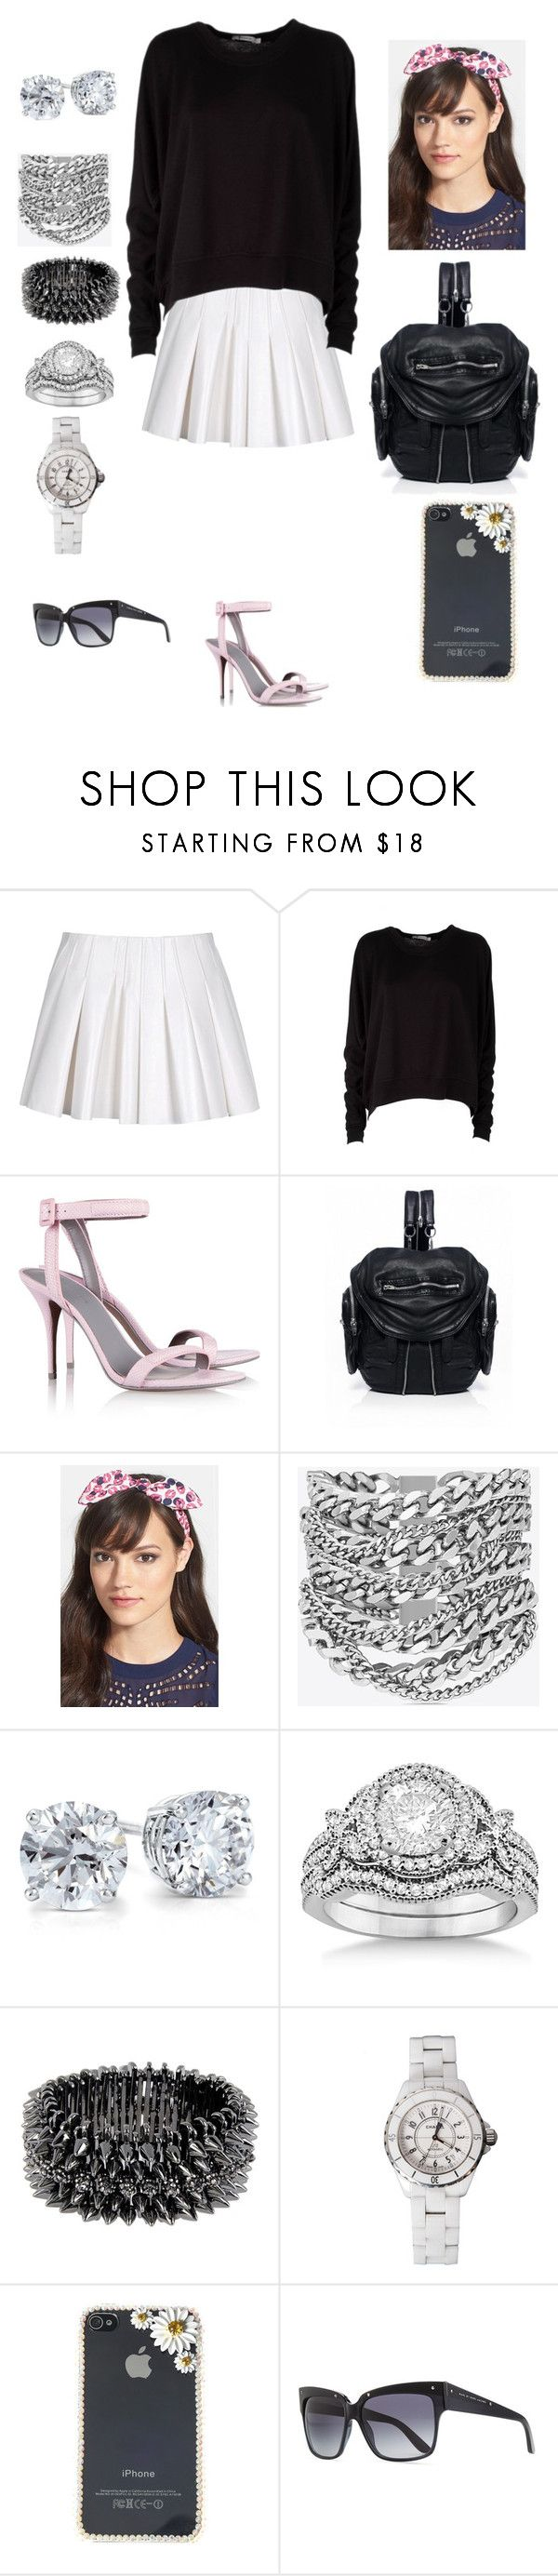 """90210 Naomi Clark"" by mendozagen ❤ liked on Polyvore featuring Alexander Wang, T By Alexander Wang, Cara, Yves Saint Laurent, Blue Nile, Allurez, Luxury Fashion, Chanel and Marc by Marc Jacobs"